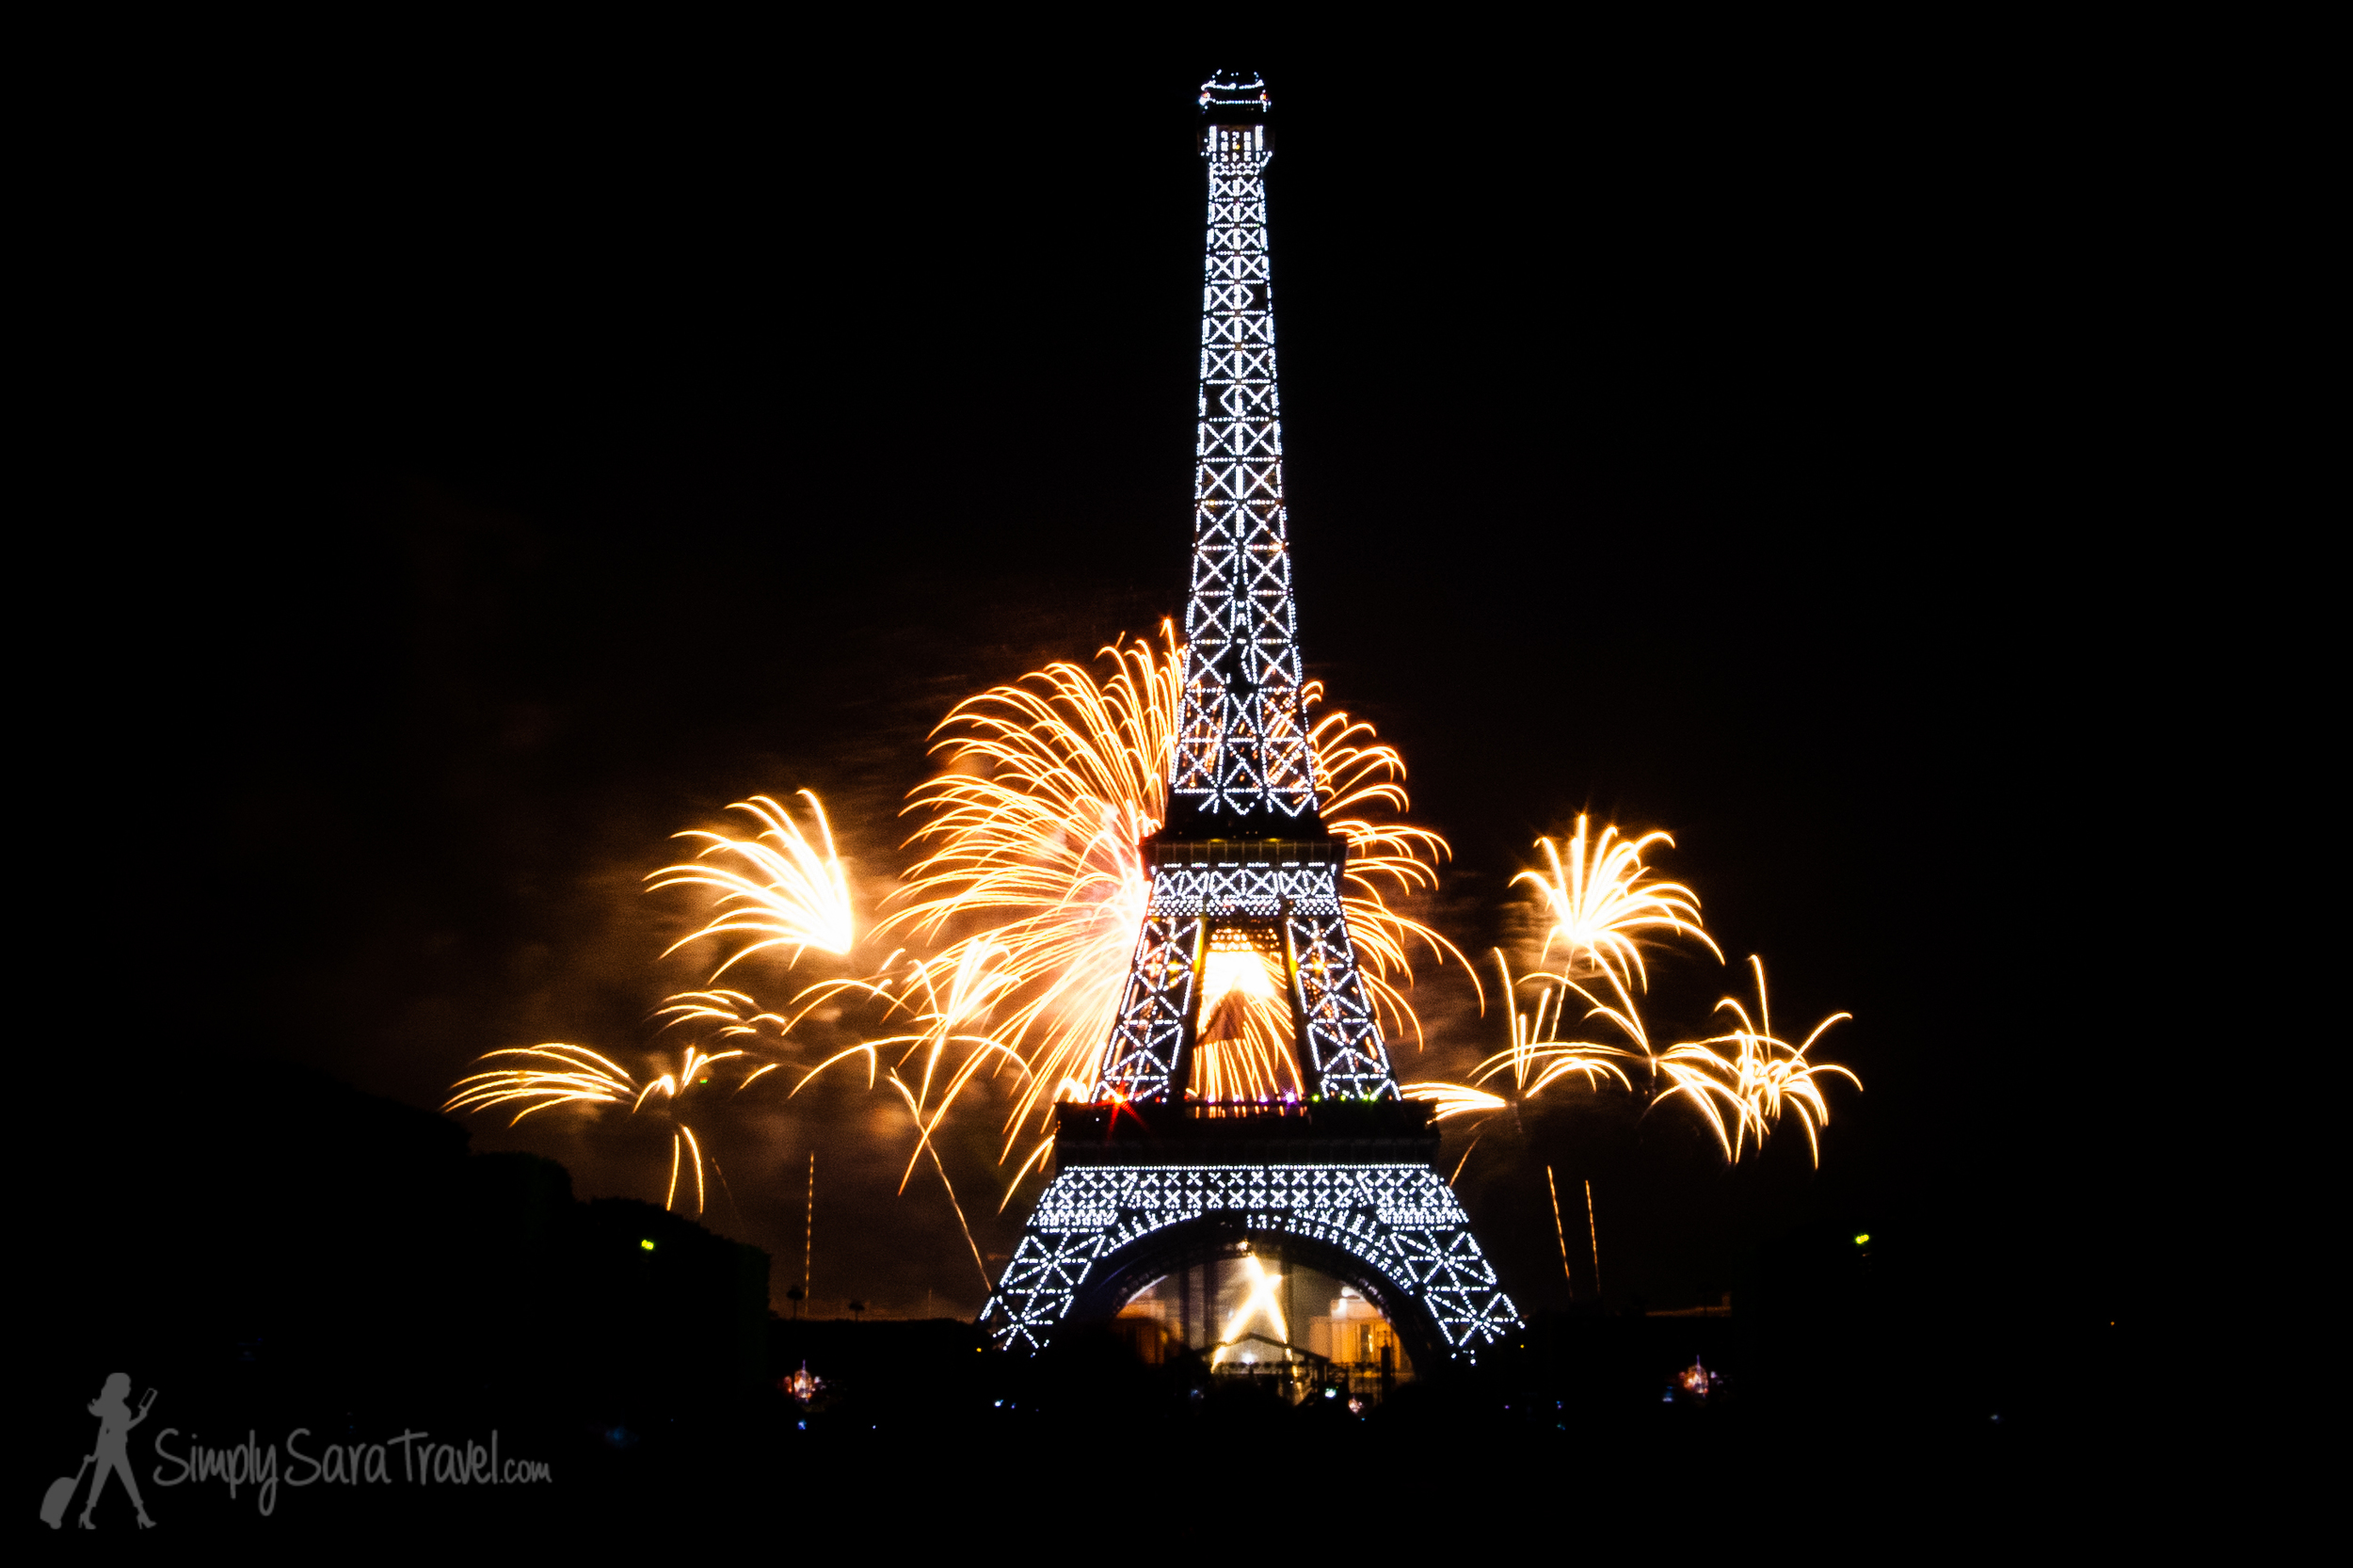 Beautiful Fireworks Display at Eiffel Tower, Bastille Day 2013